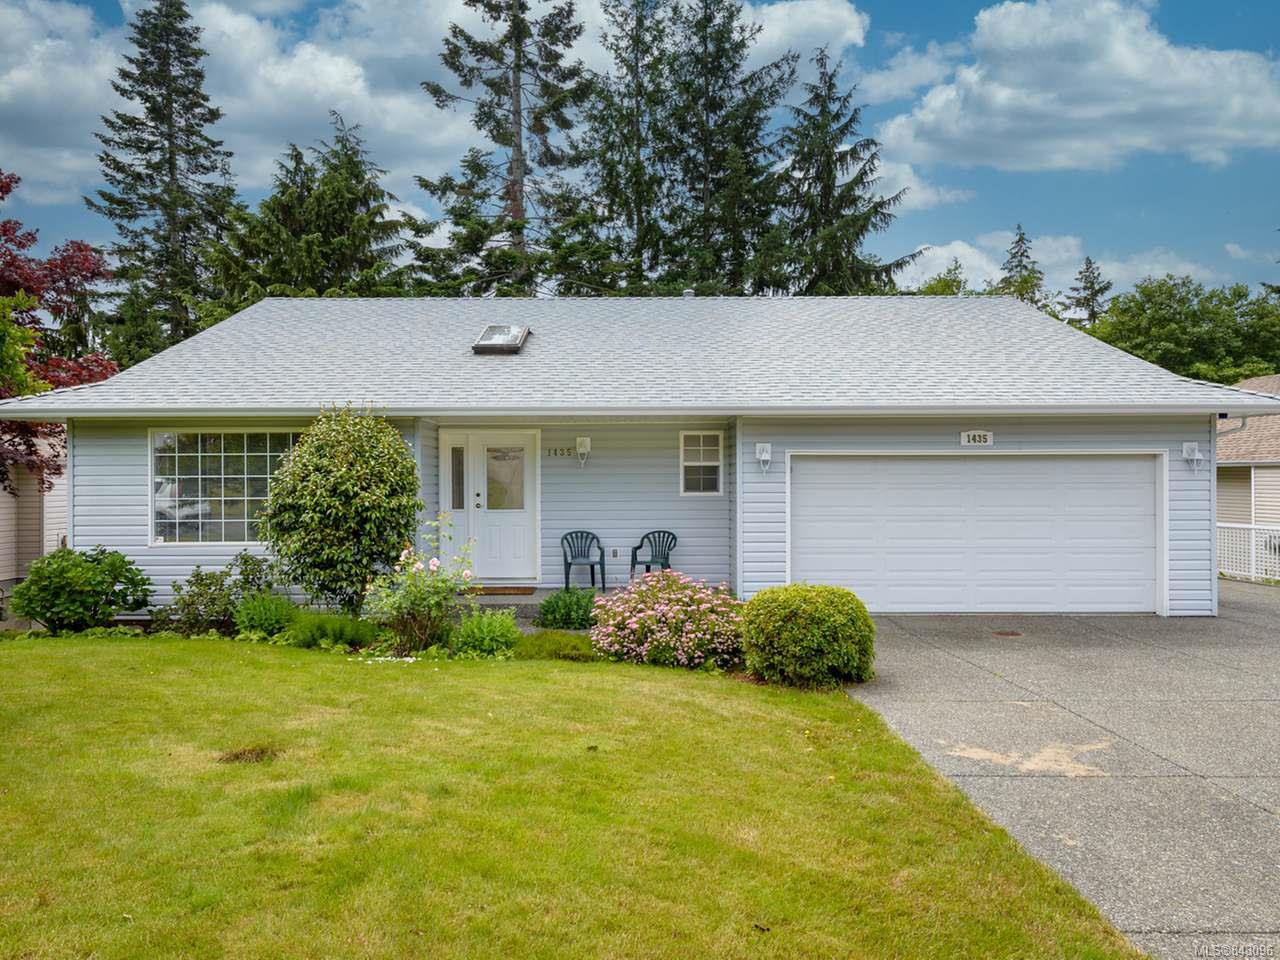 Main Photo: 1435 Sitka Ave in COURTENAY: CV Courtenay East Single Family Detached for sale (Comox Valley)  : MLS®# 843096